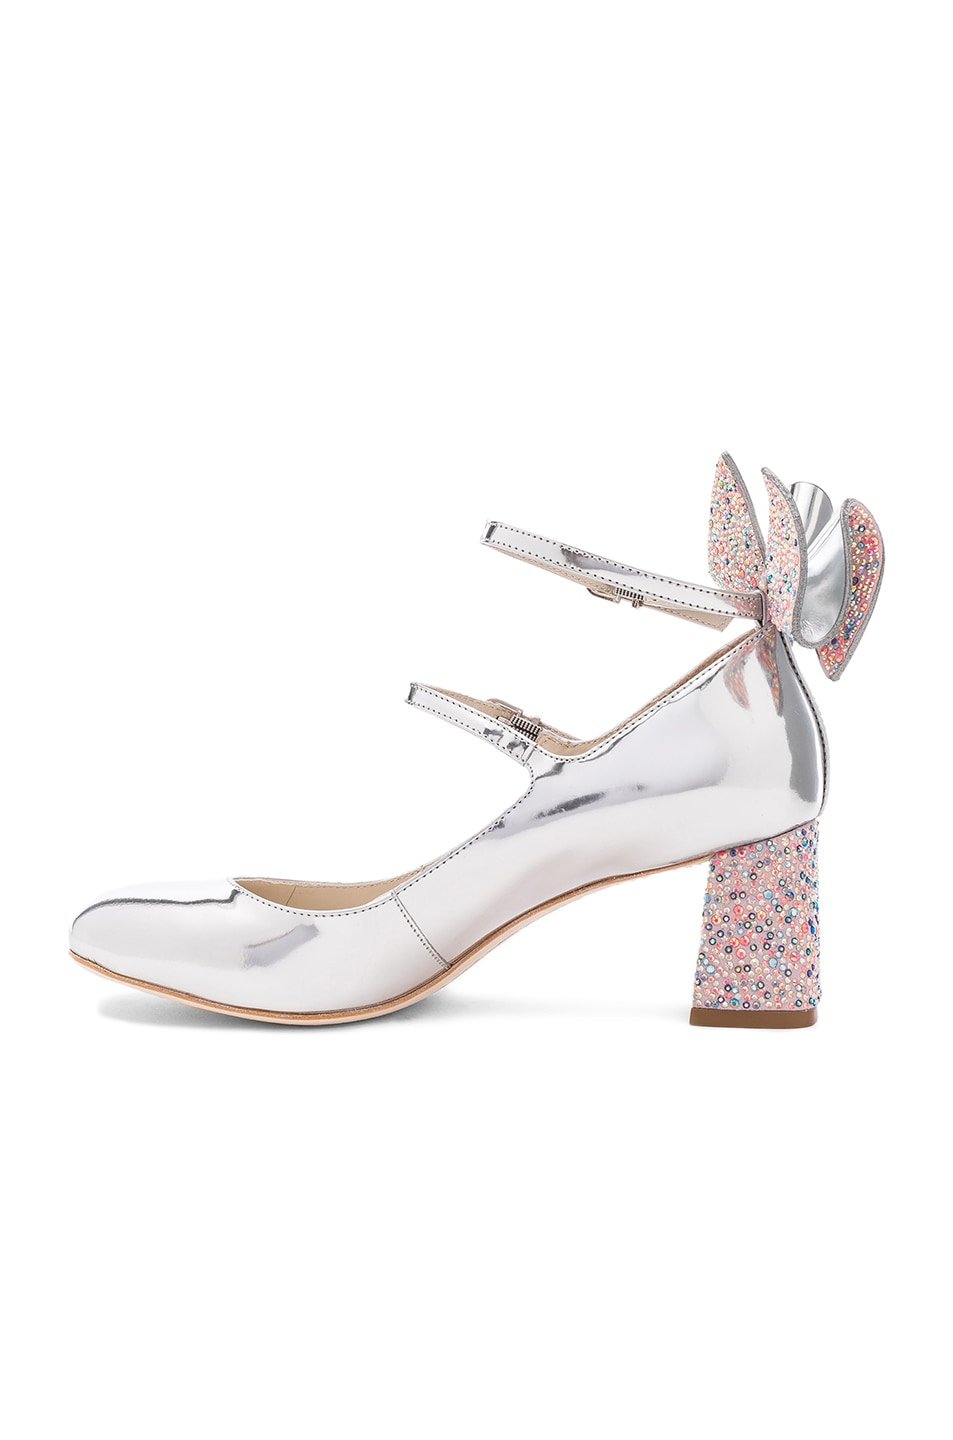 Image 5 of Sophia Webster Leather Lilia Mid Mary Jane Heels in Silver